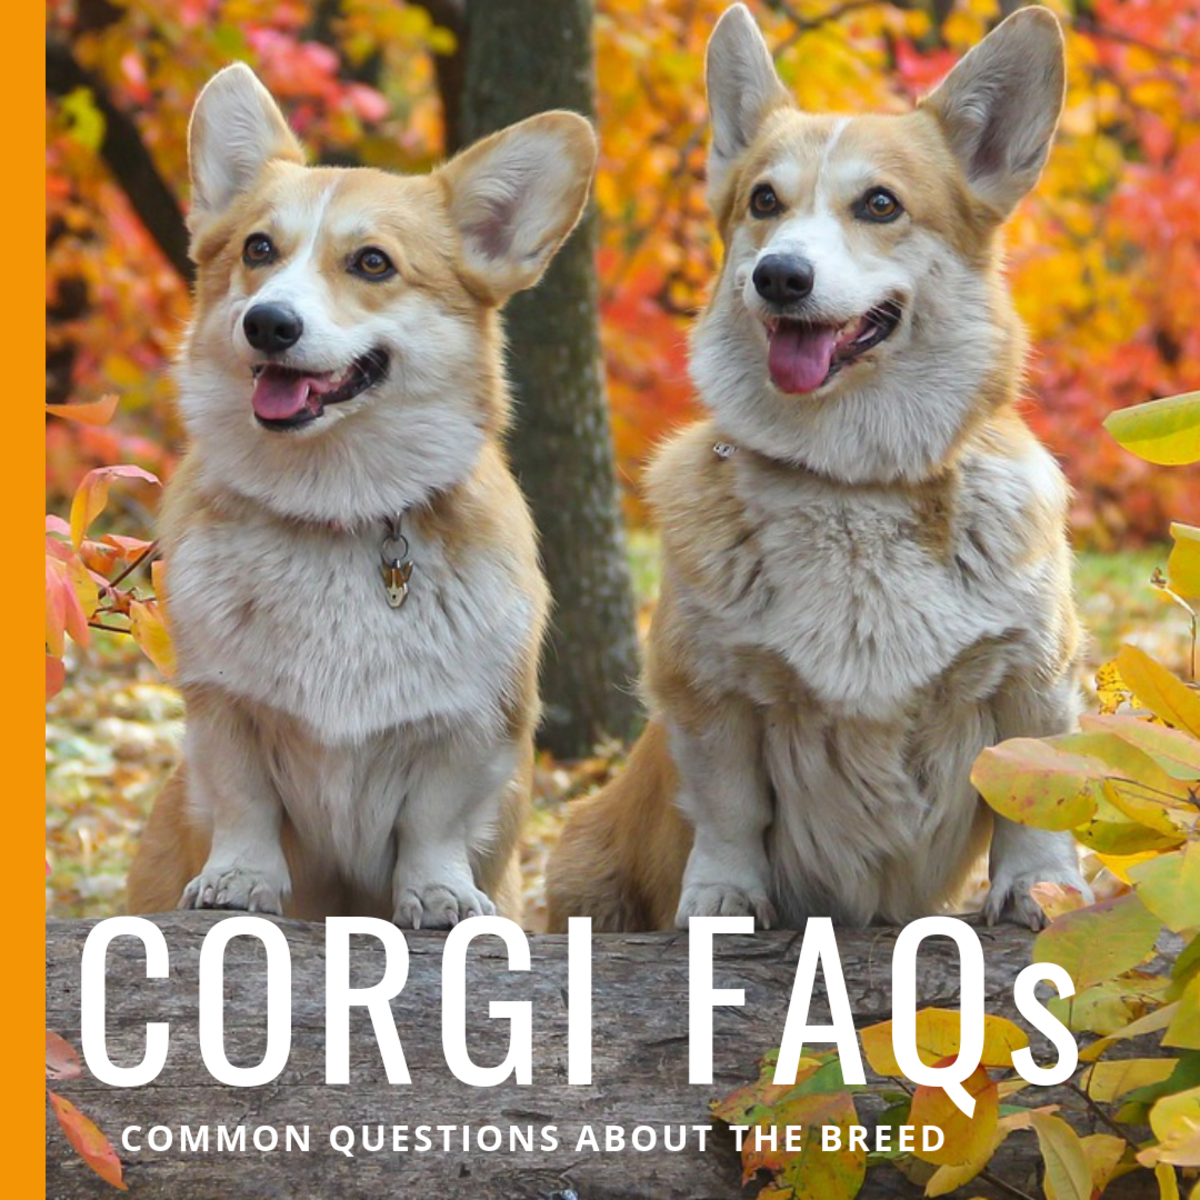 These are some of the questions you might be asking before you get a Corgi.